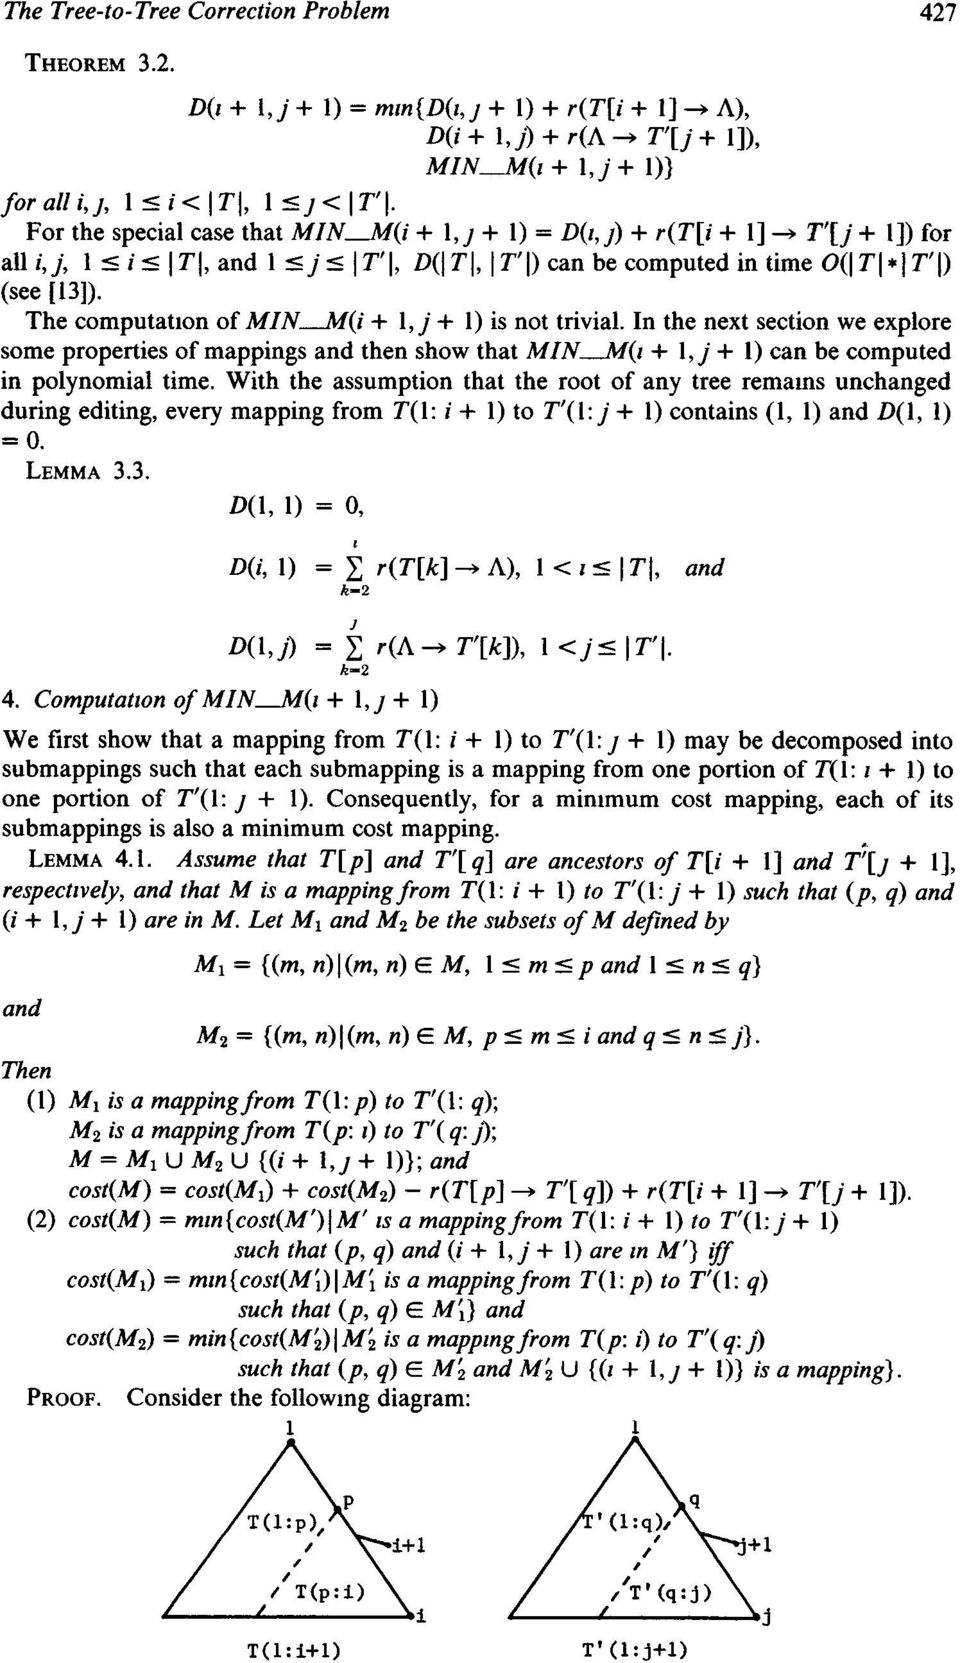 The computation of MIN M(i + 1, j + 1) is not trivial. In the next section we explore some properties of mappings and then show that MIN M(t + l,j + 1) can be computed in polynomial time.